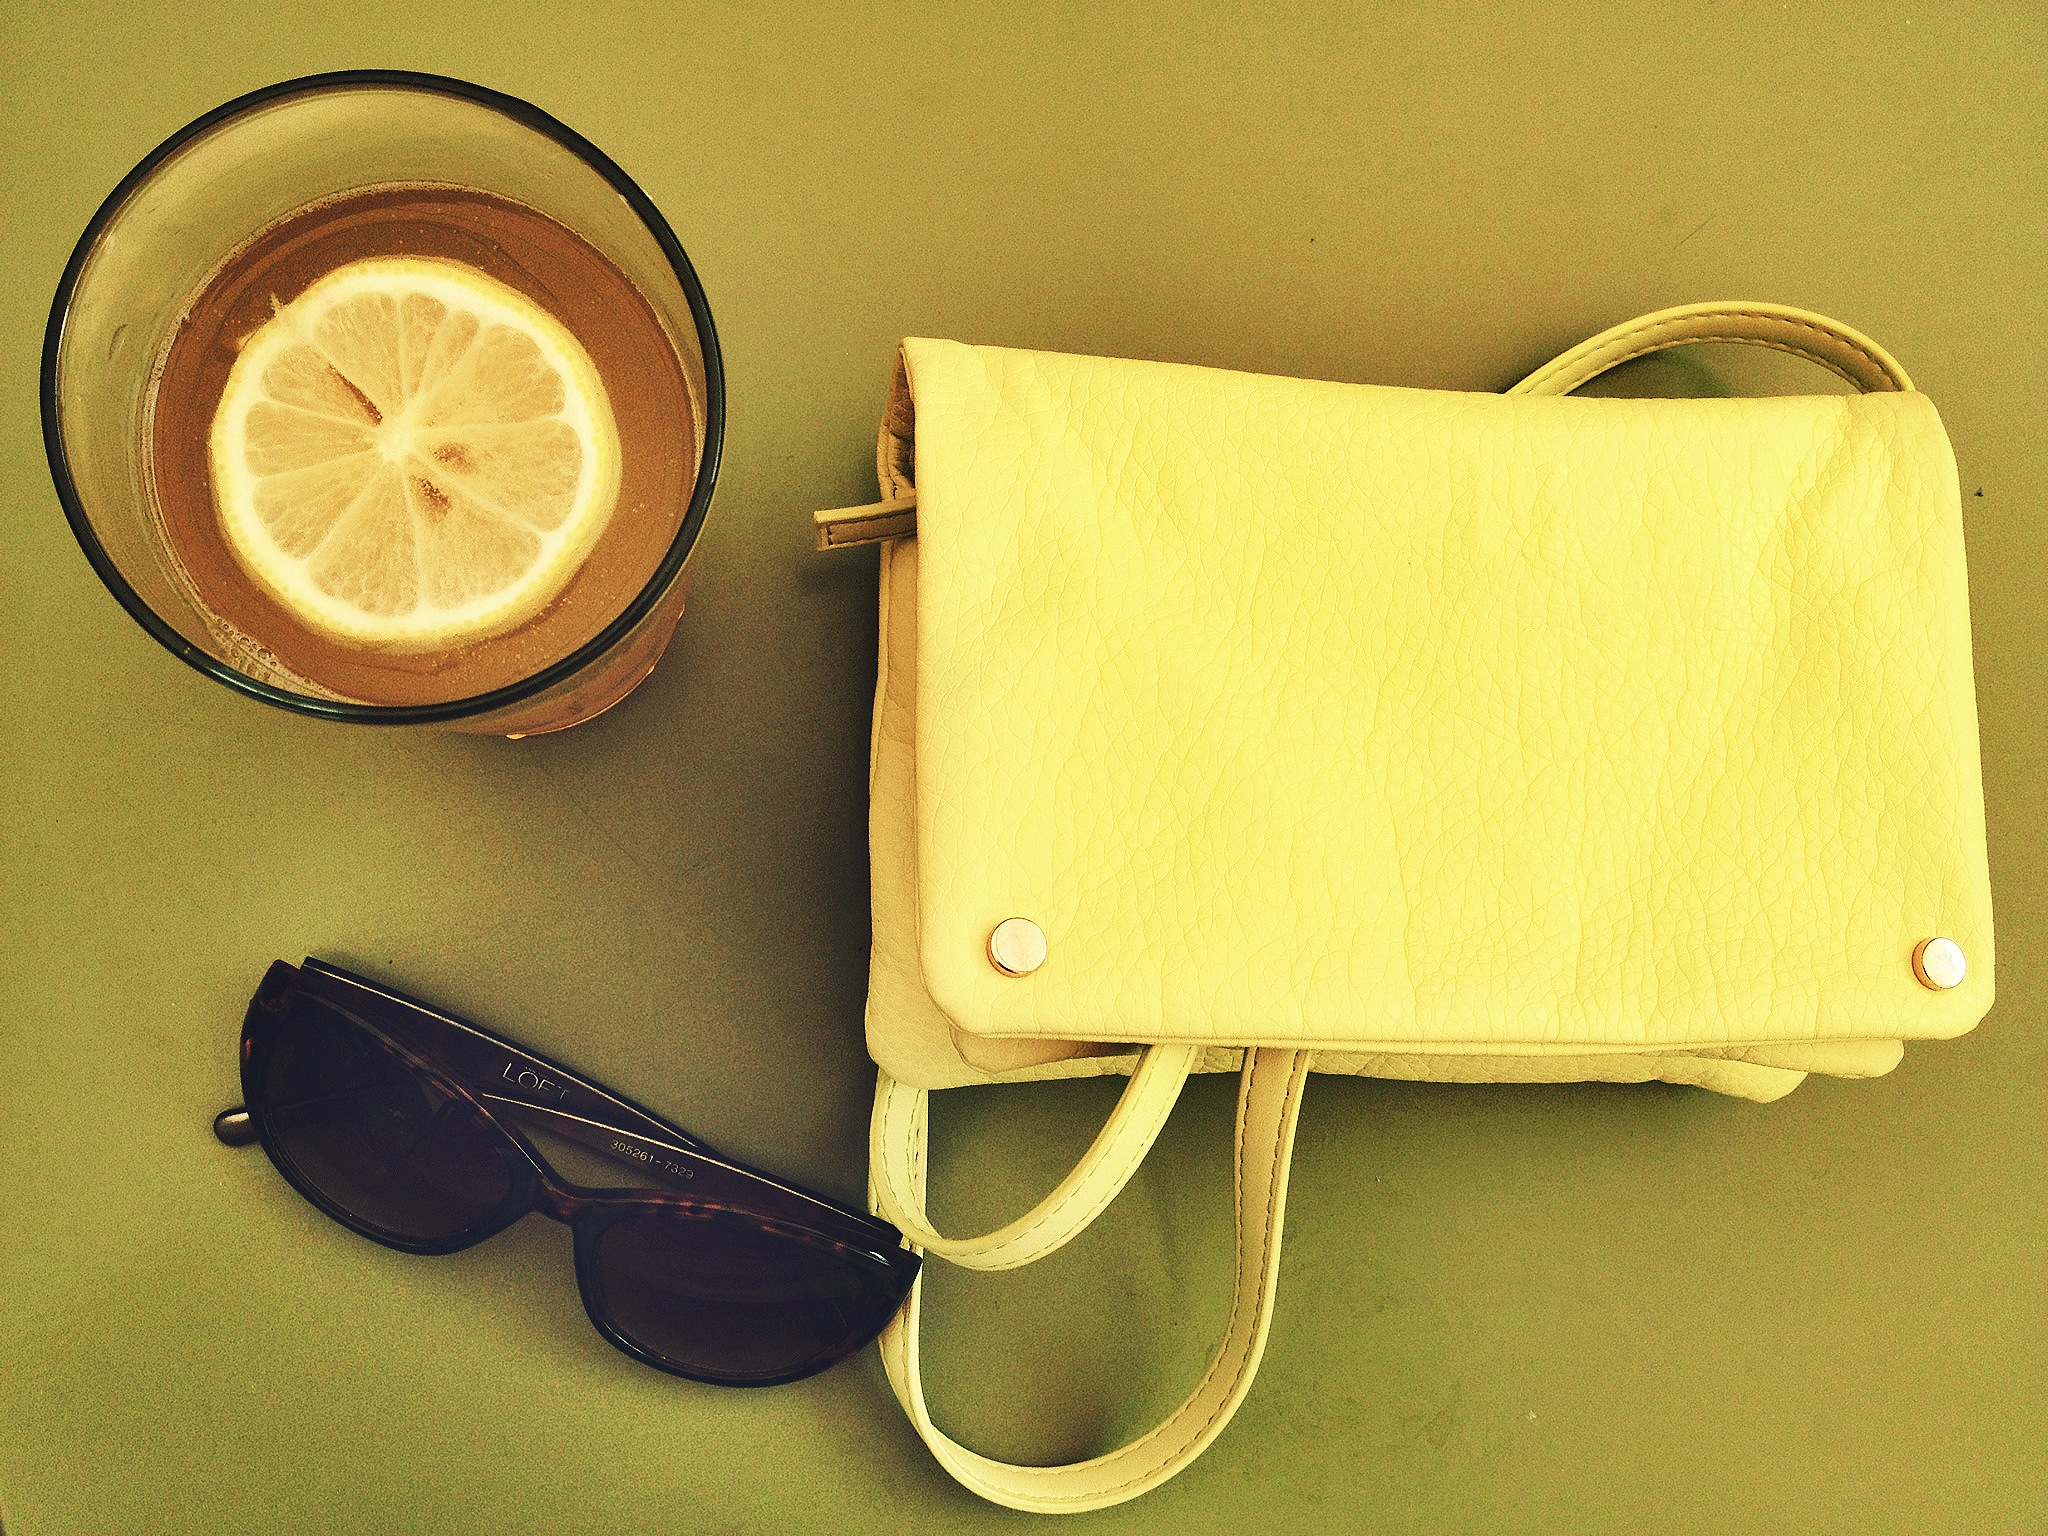 Keepin' cool with sunnies, beer and a killer bag.